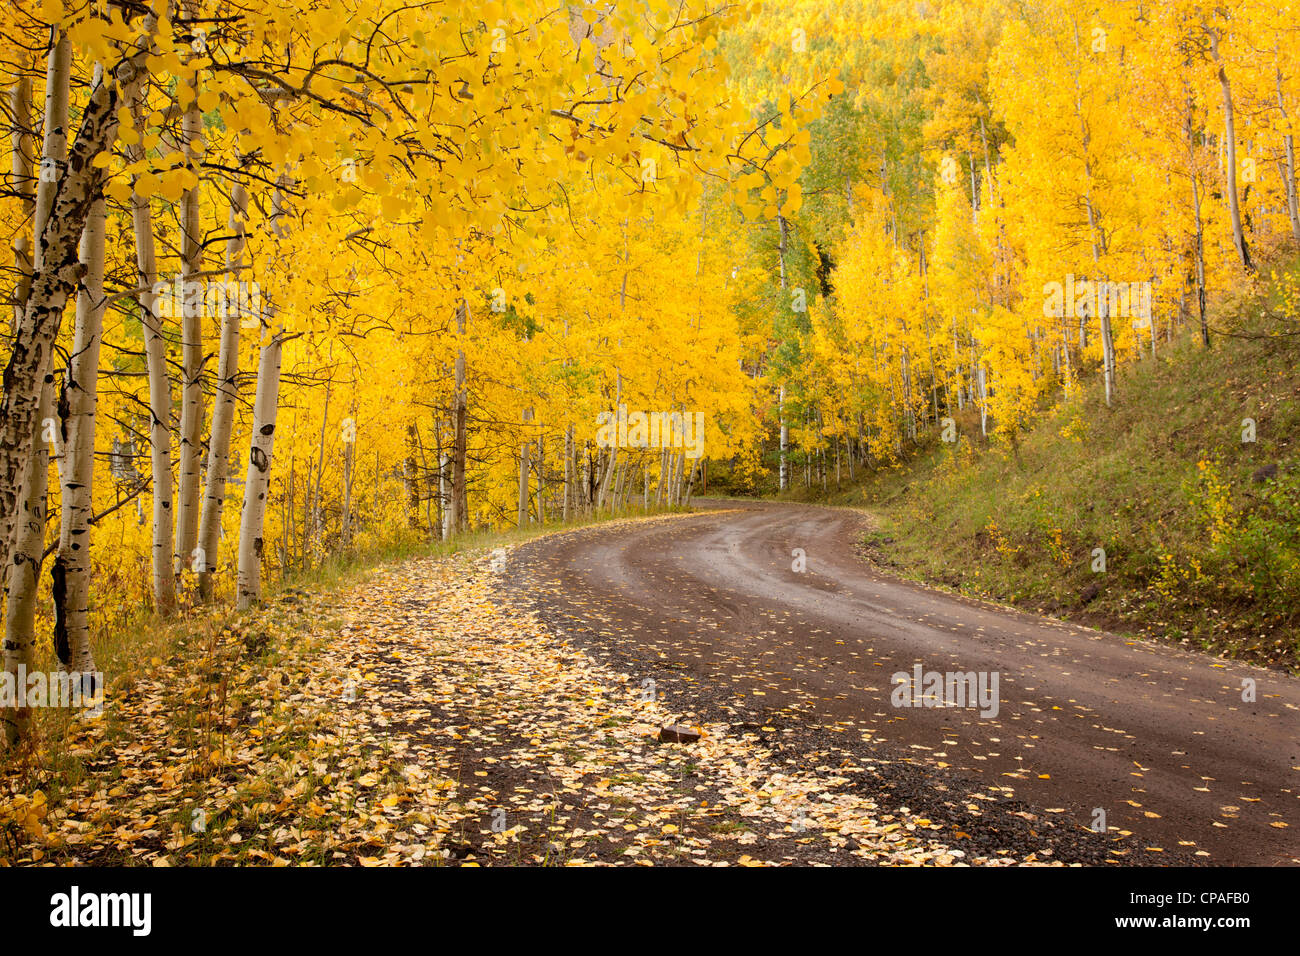 USA, Colorado, Uncompahgre National Forest. Autumn-colored aspen trees  line a forest road - Stock Image